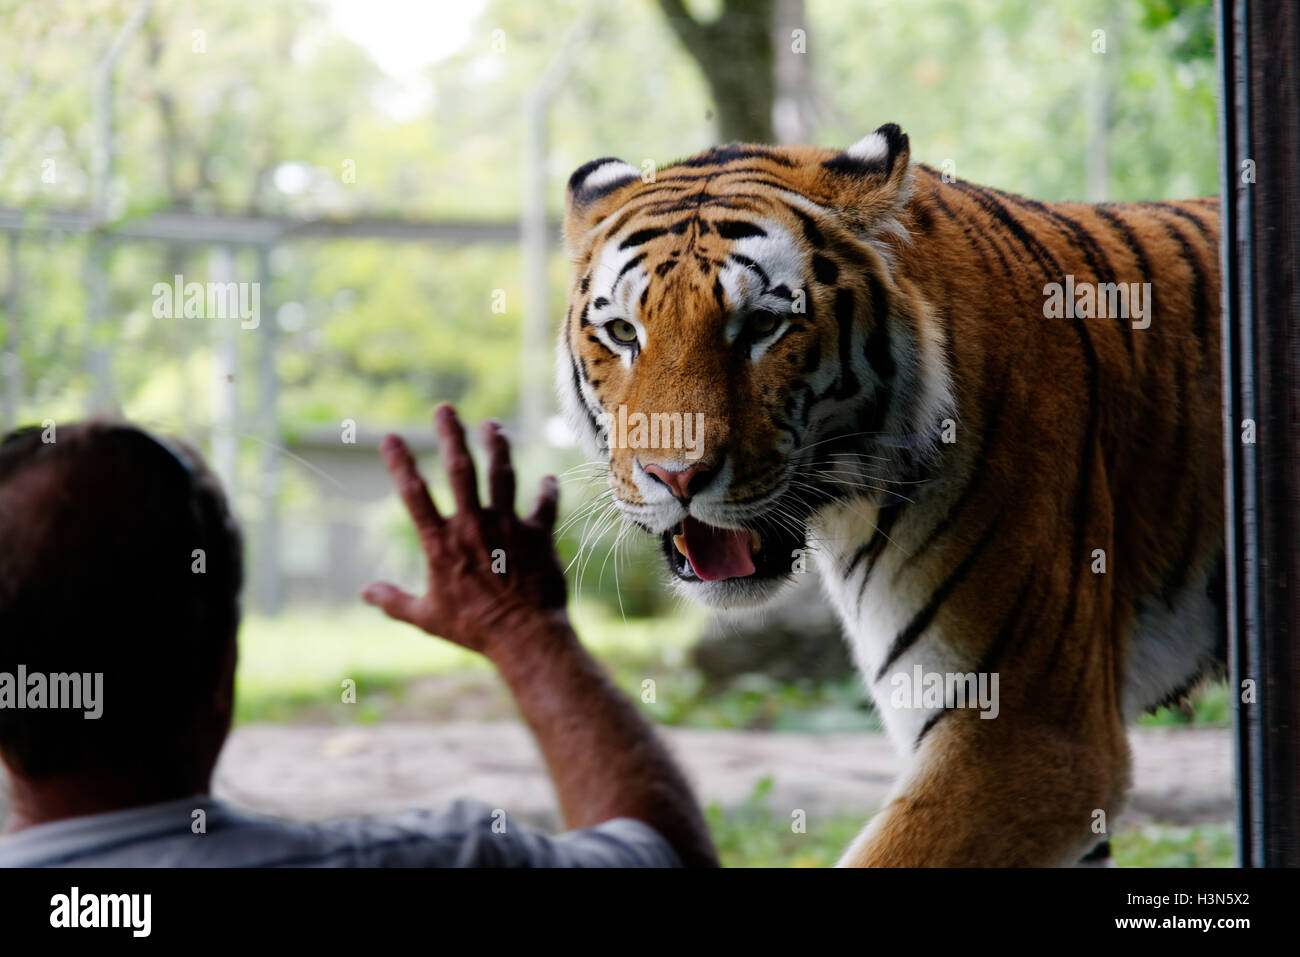 A man looking at the Siberian Tiger in Granby Zoo, Quebec, Canada - Stock Image